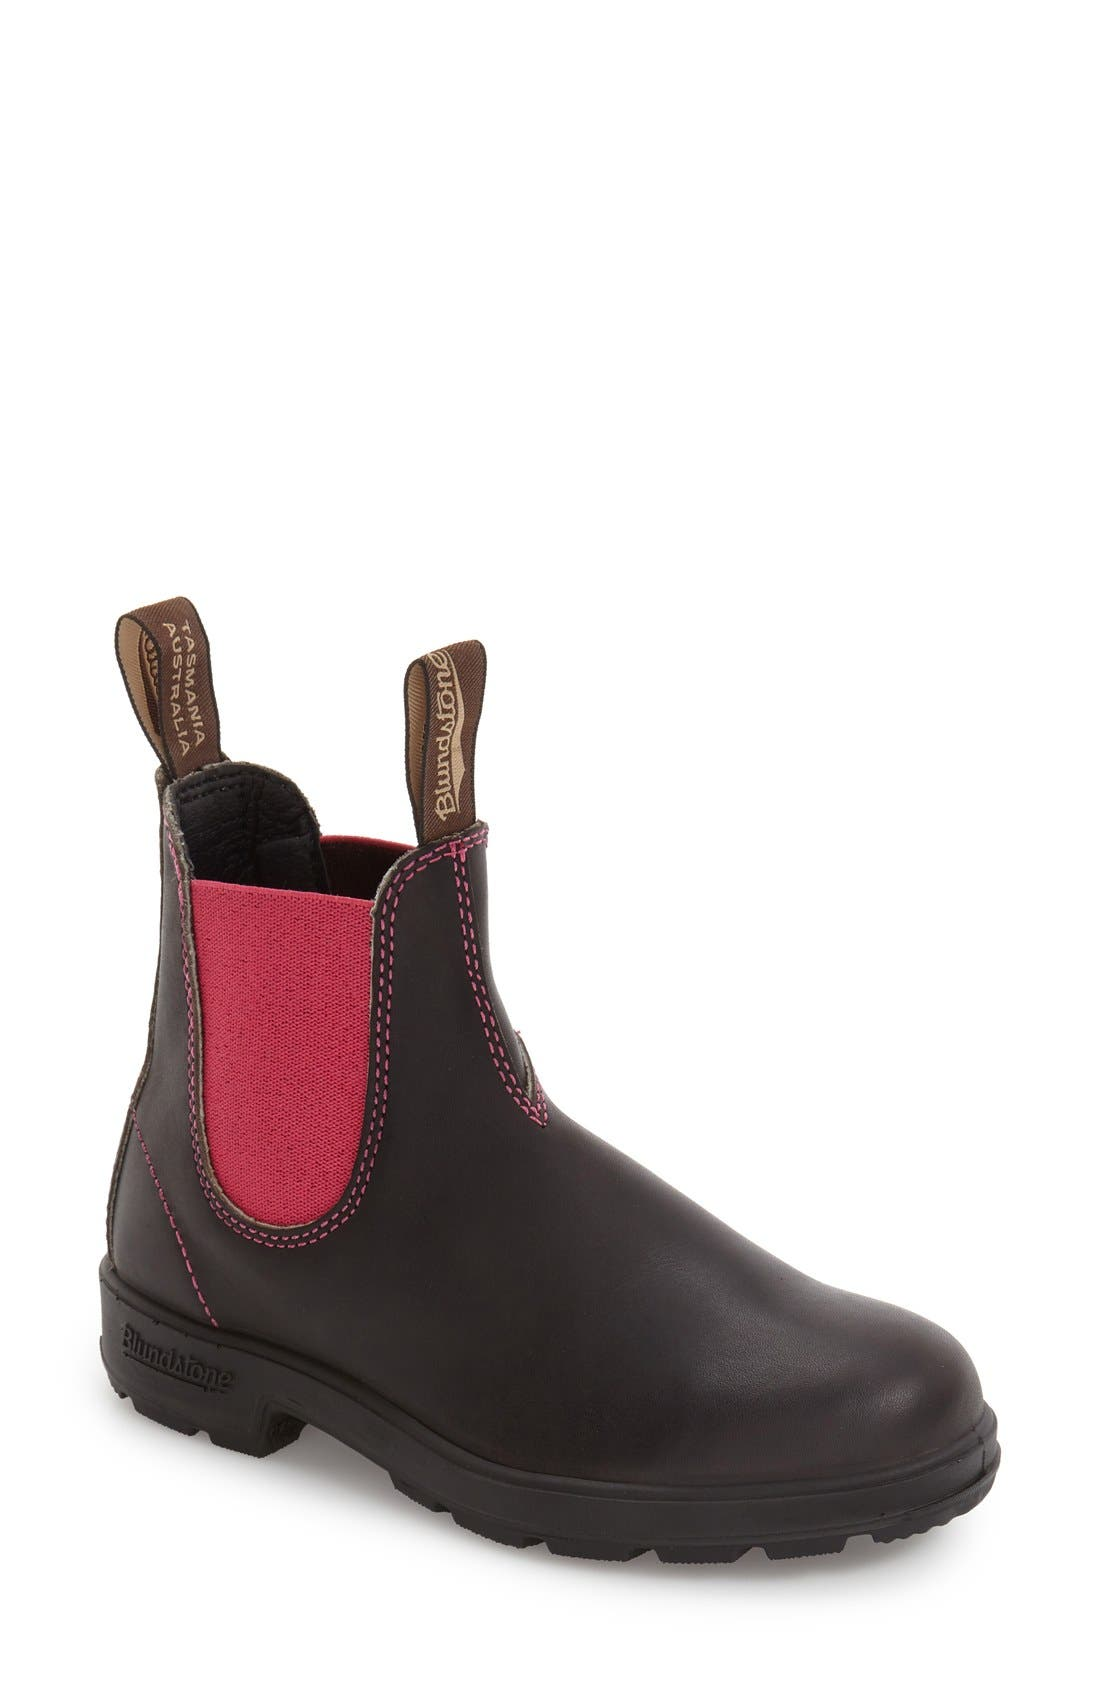 Footwear 'Original - 500 Series' Water Resistant Chelsea Boot,                             Main thumbnail 1, color,                             Stout Brown/ Pink Leather